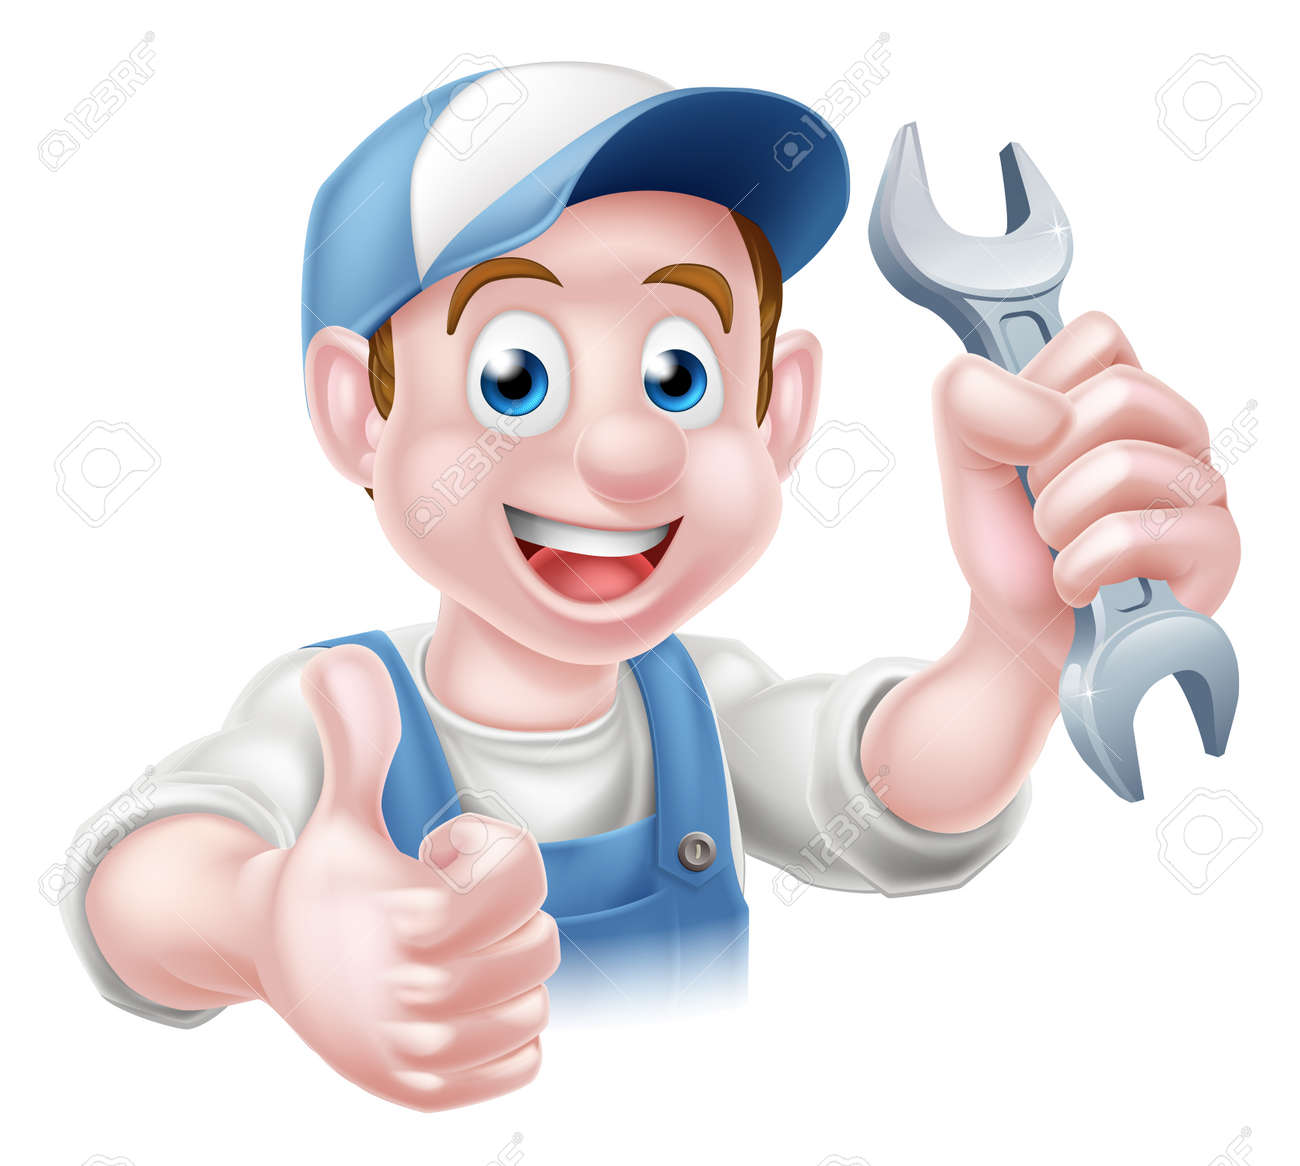 Cartoon Plumber or auto repair mechanic service handyman worker man giving a thumbs up and holding a spanner - 44561503